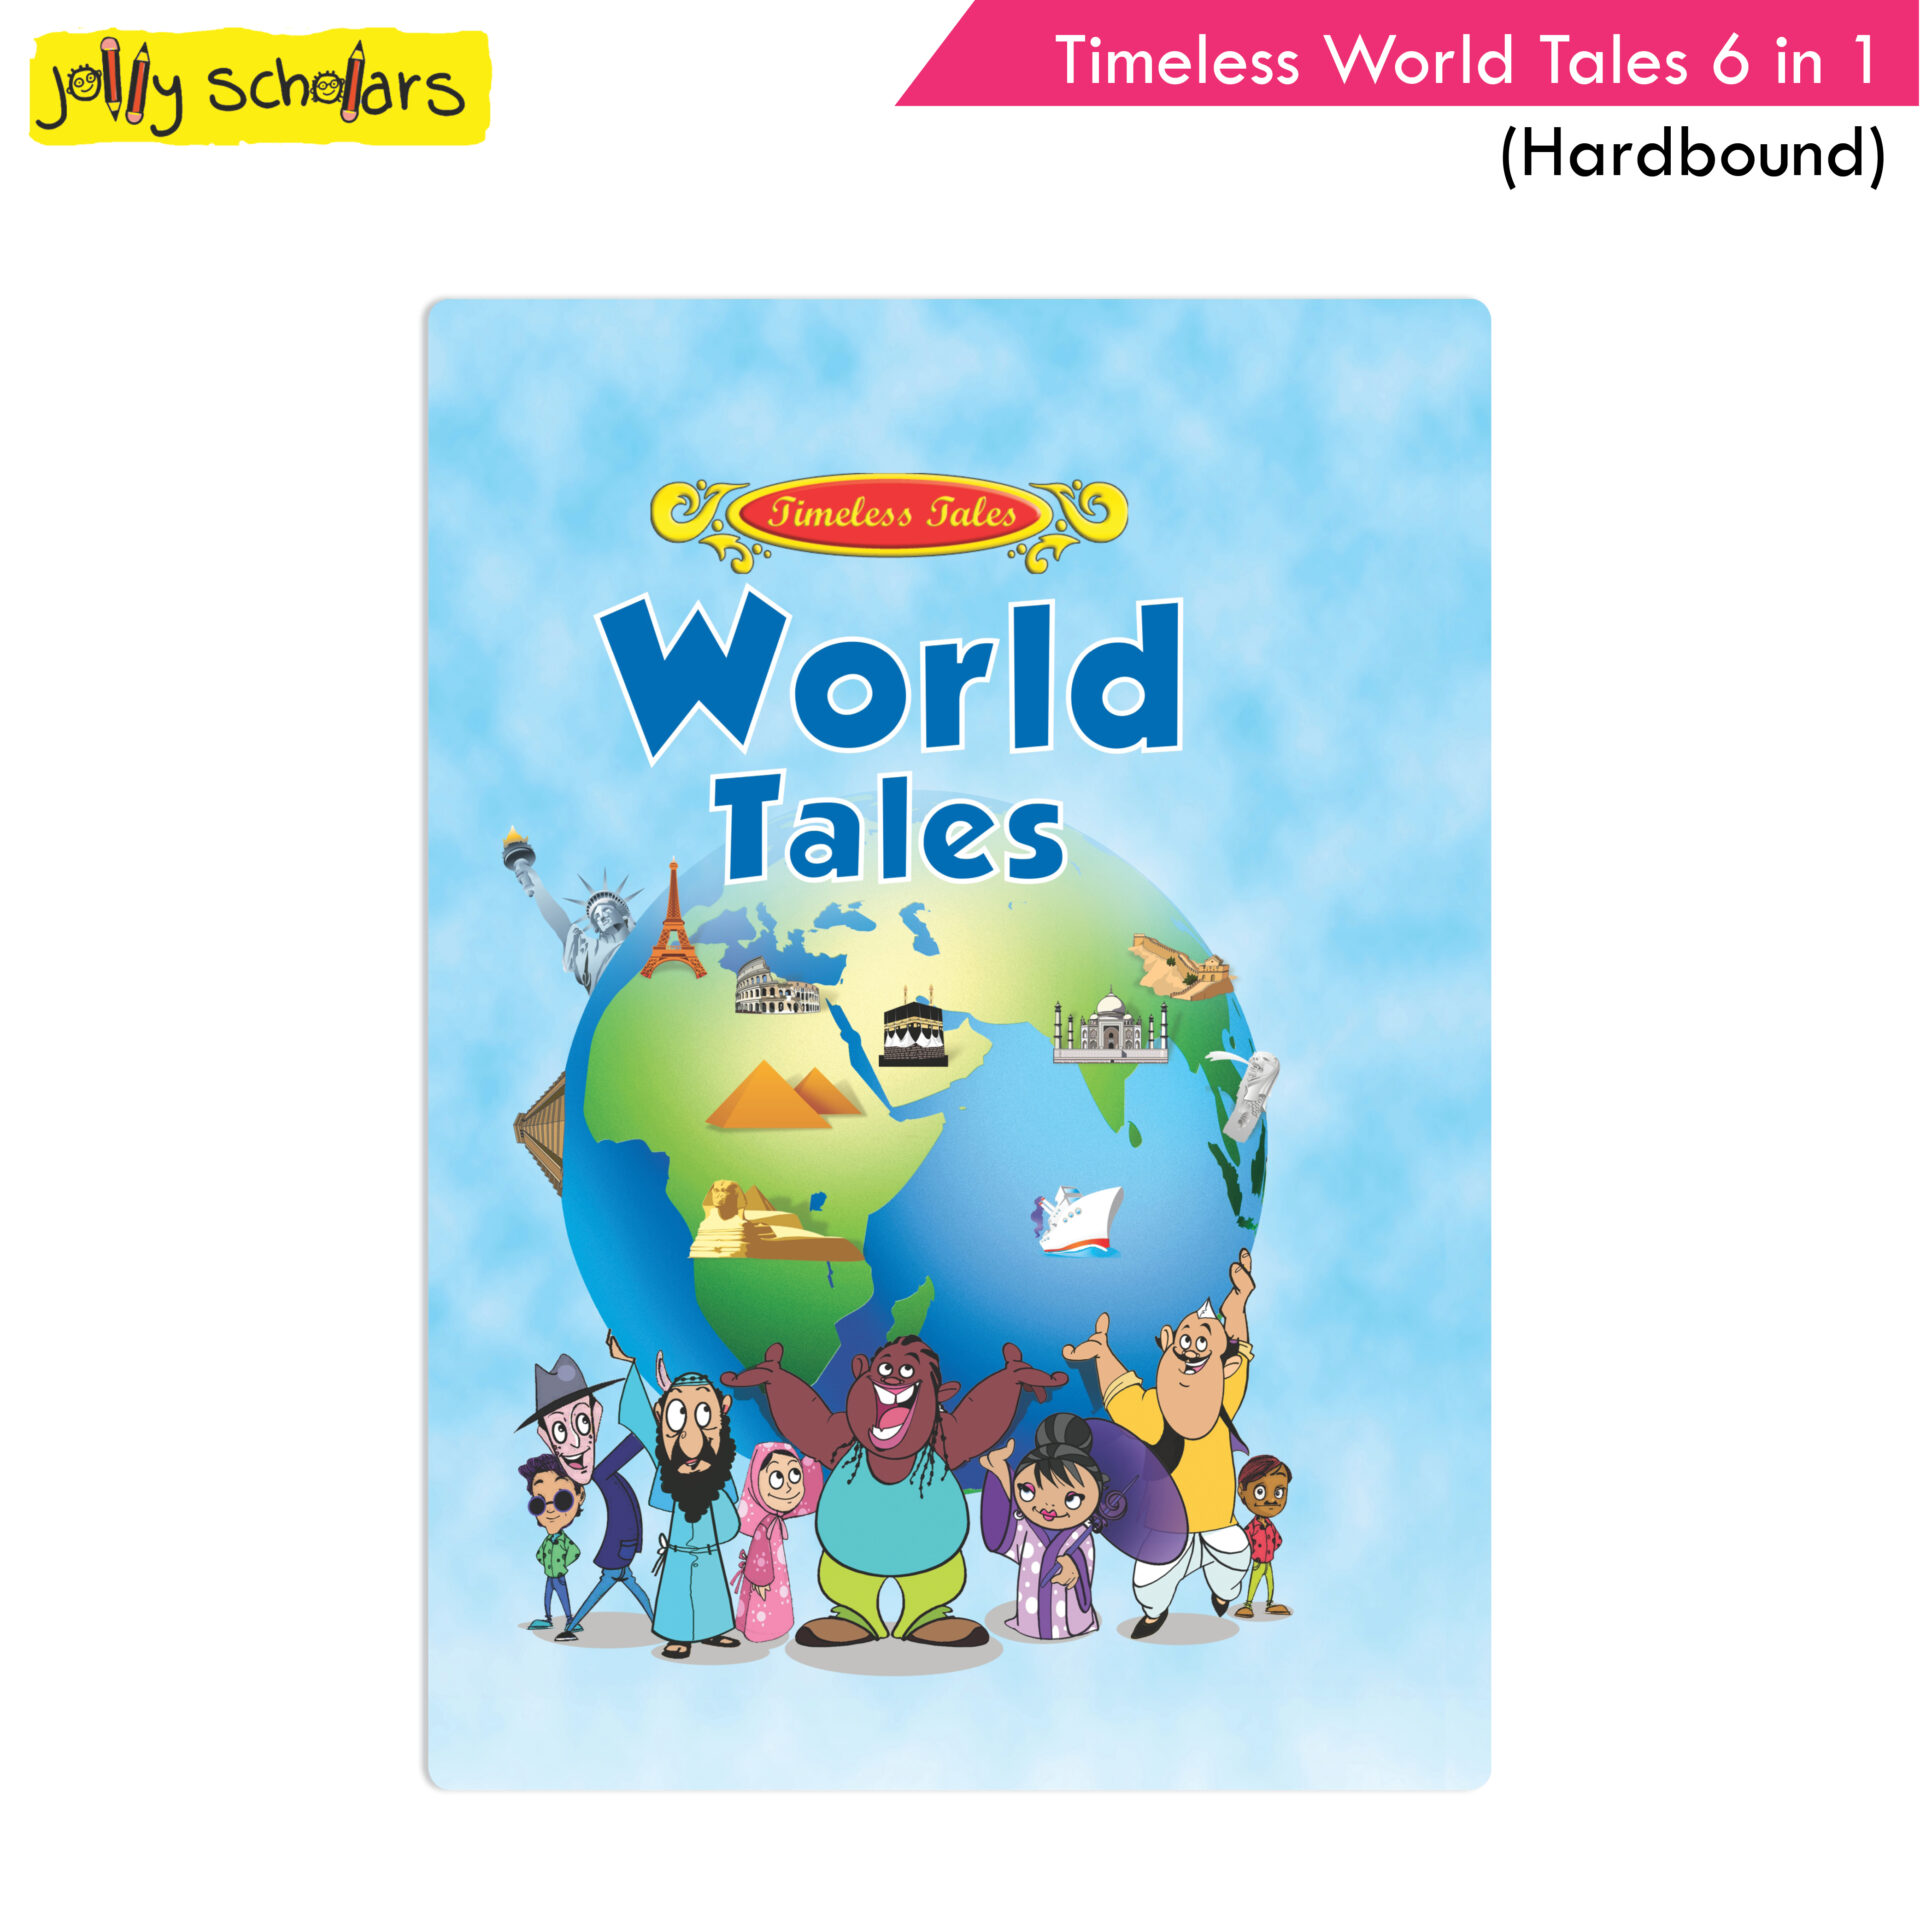 Jolly Scholars Timeless World Tales 6 in 1 Hard Bound 1